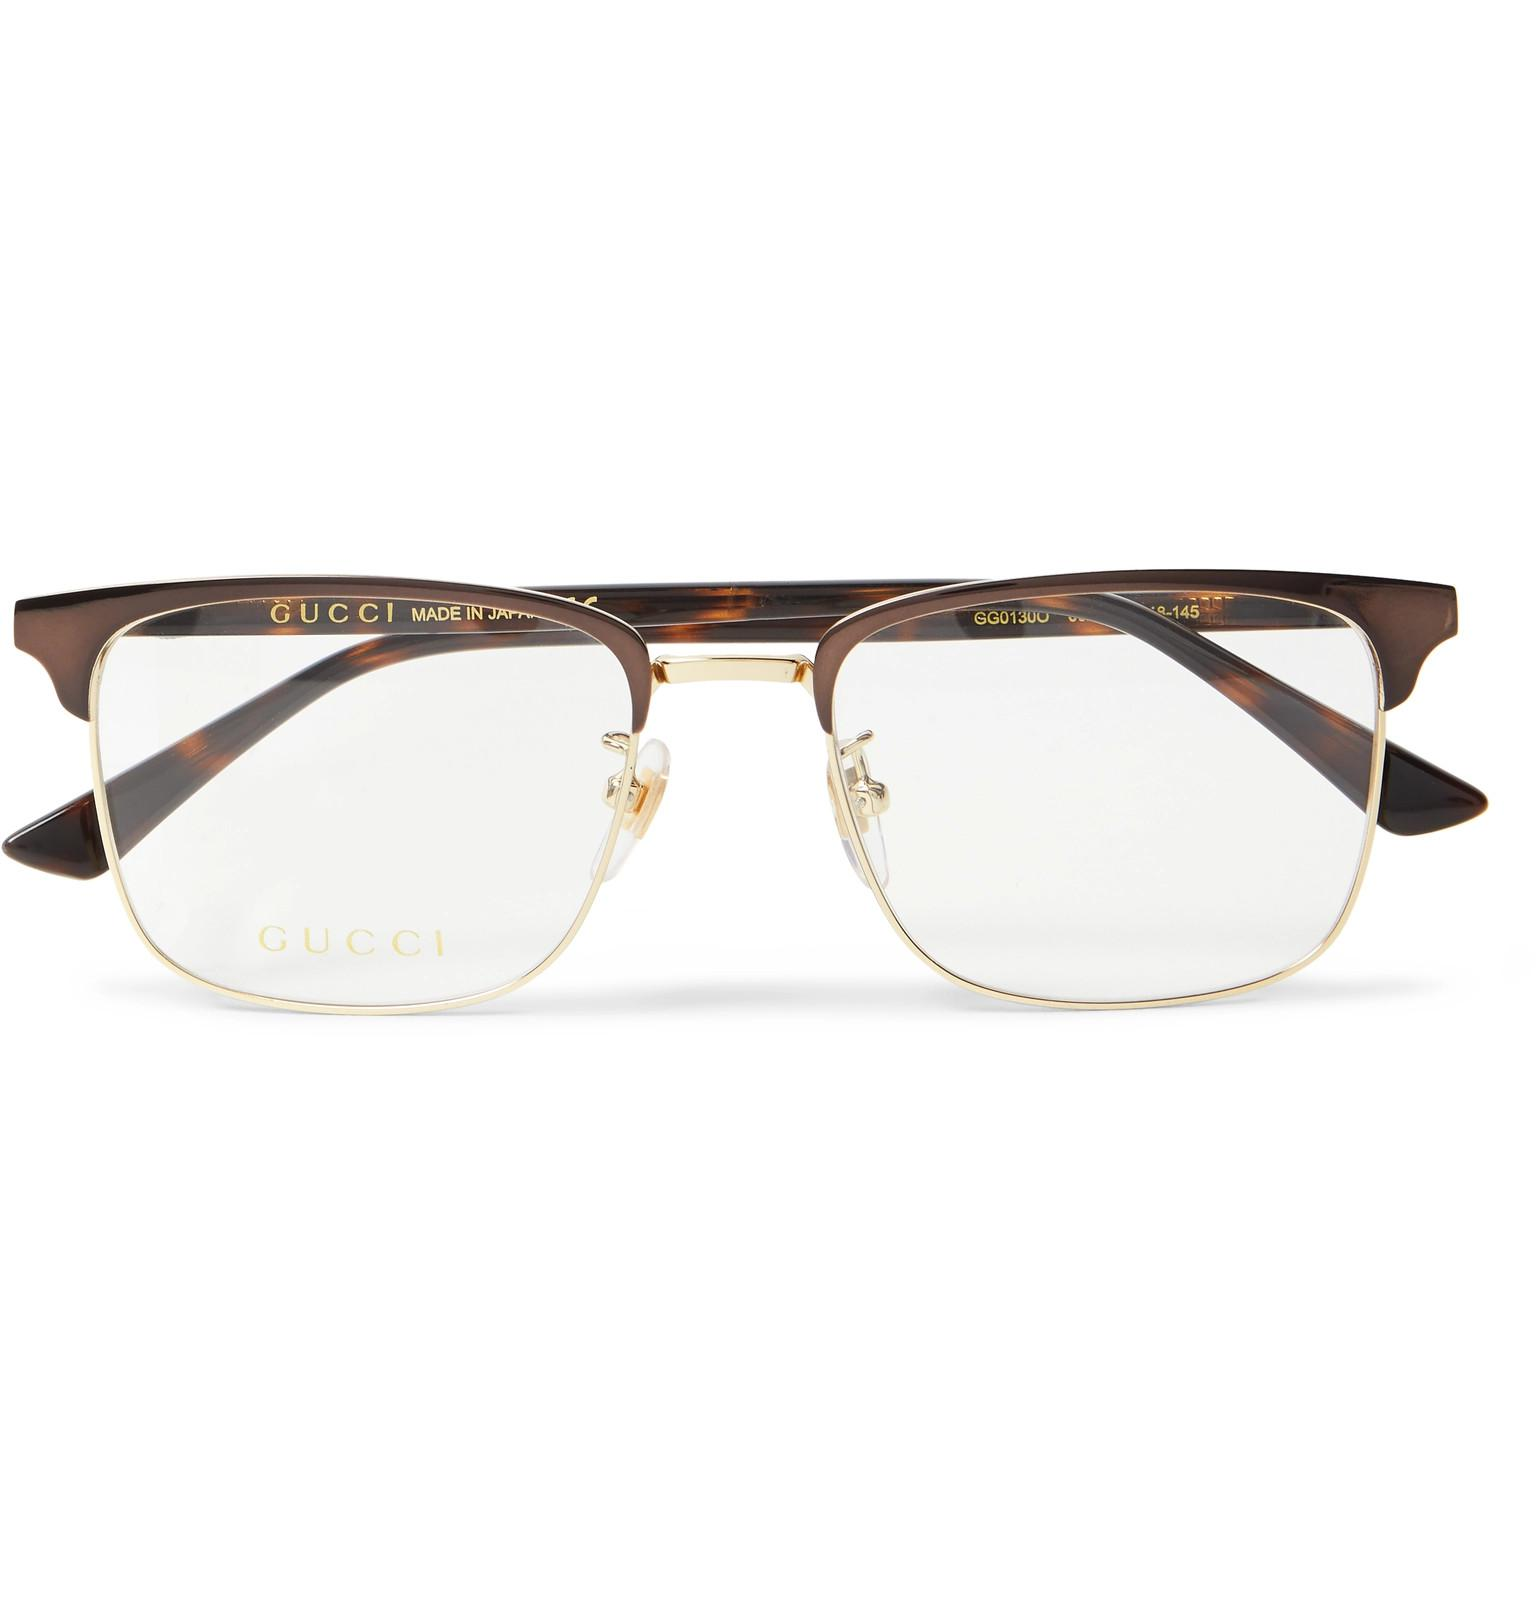 341452c2a2 Gucci. Men s Brown Square-frame Tortoiseshell Acetate And Gold-tone Optical  Glasses